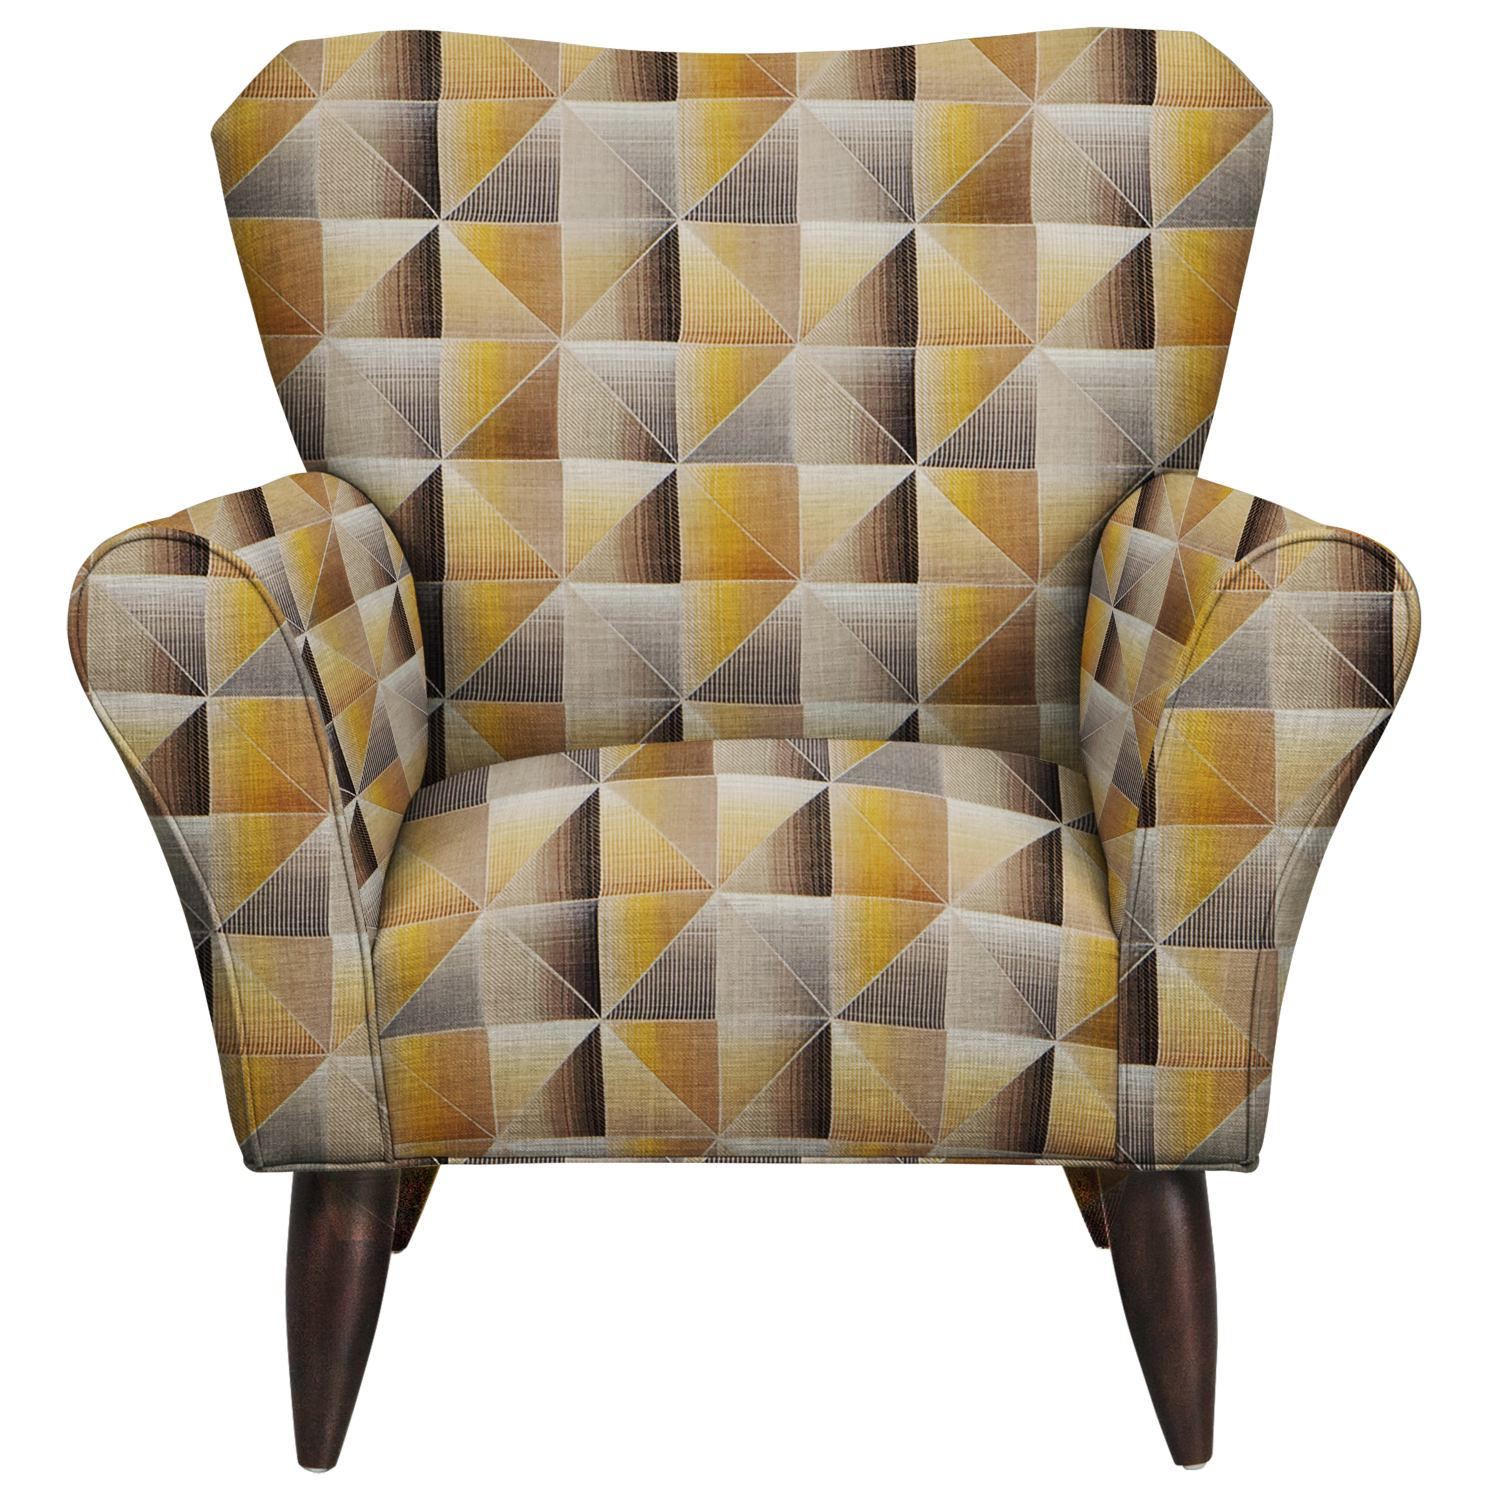 Living Room Furniture - Jessie Chair w/ Immortal Lemoncello Fabric